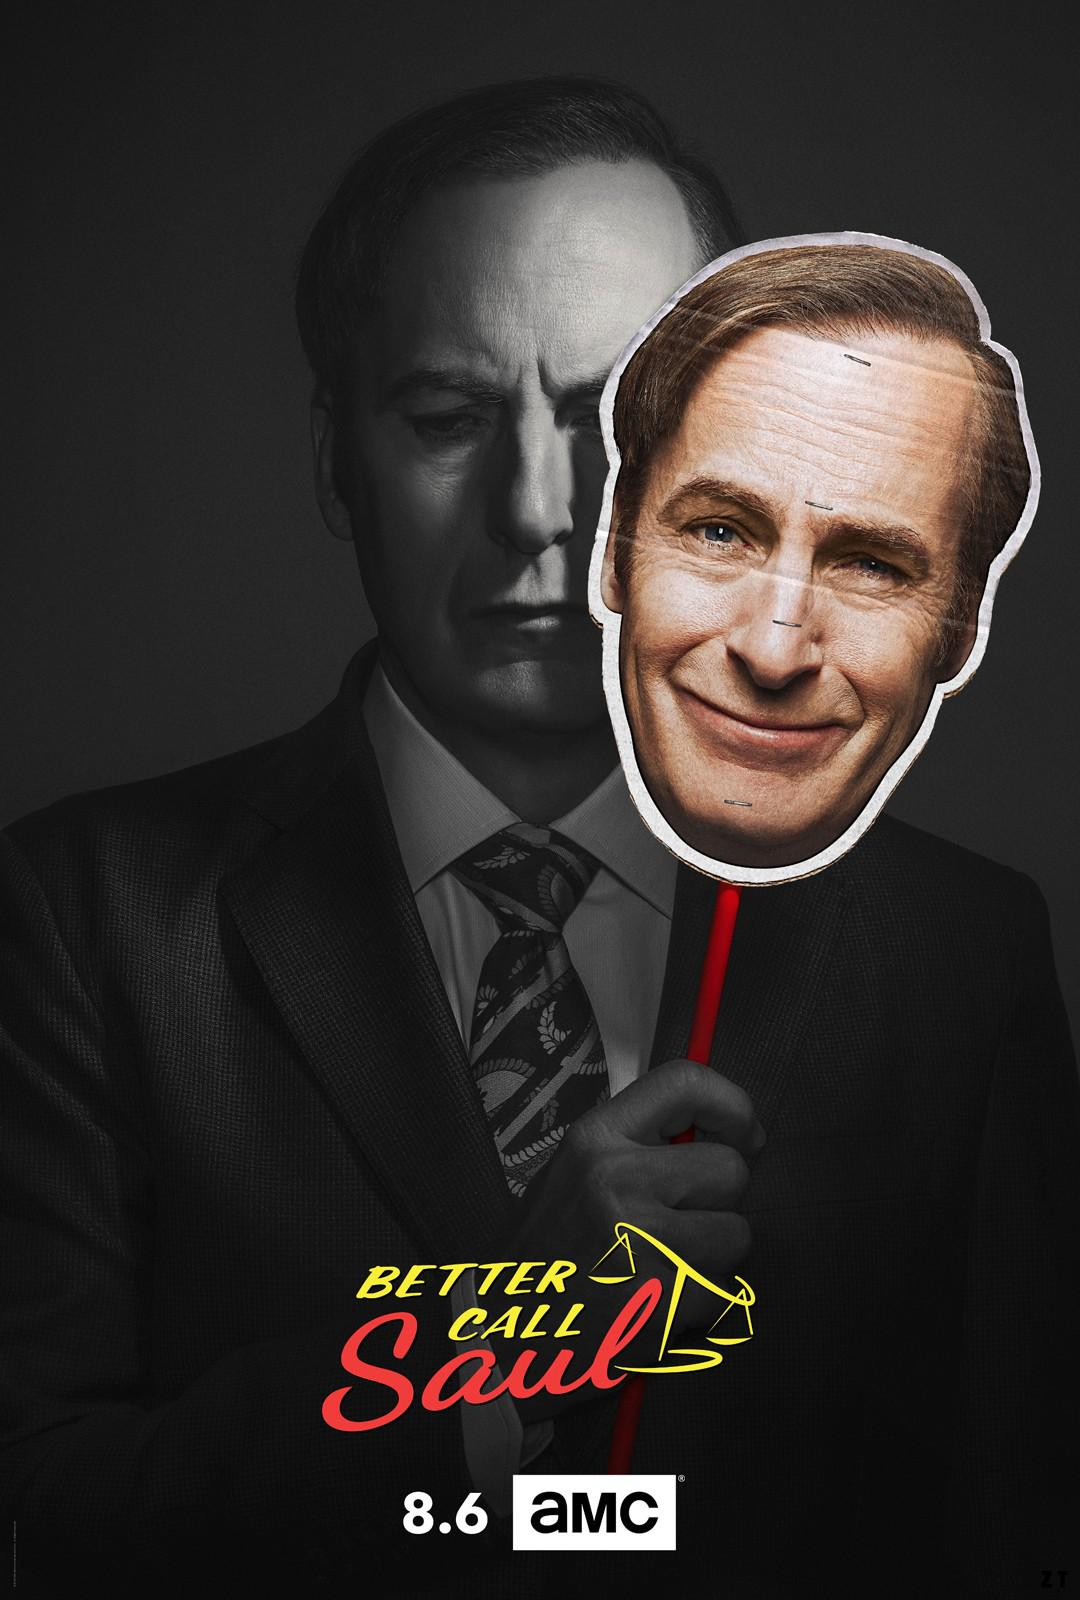 Telecharger Better Call Saul- Saison 4  [03/??] VOSTFR | Qualité HD 720p